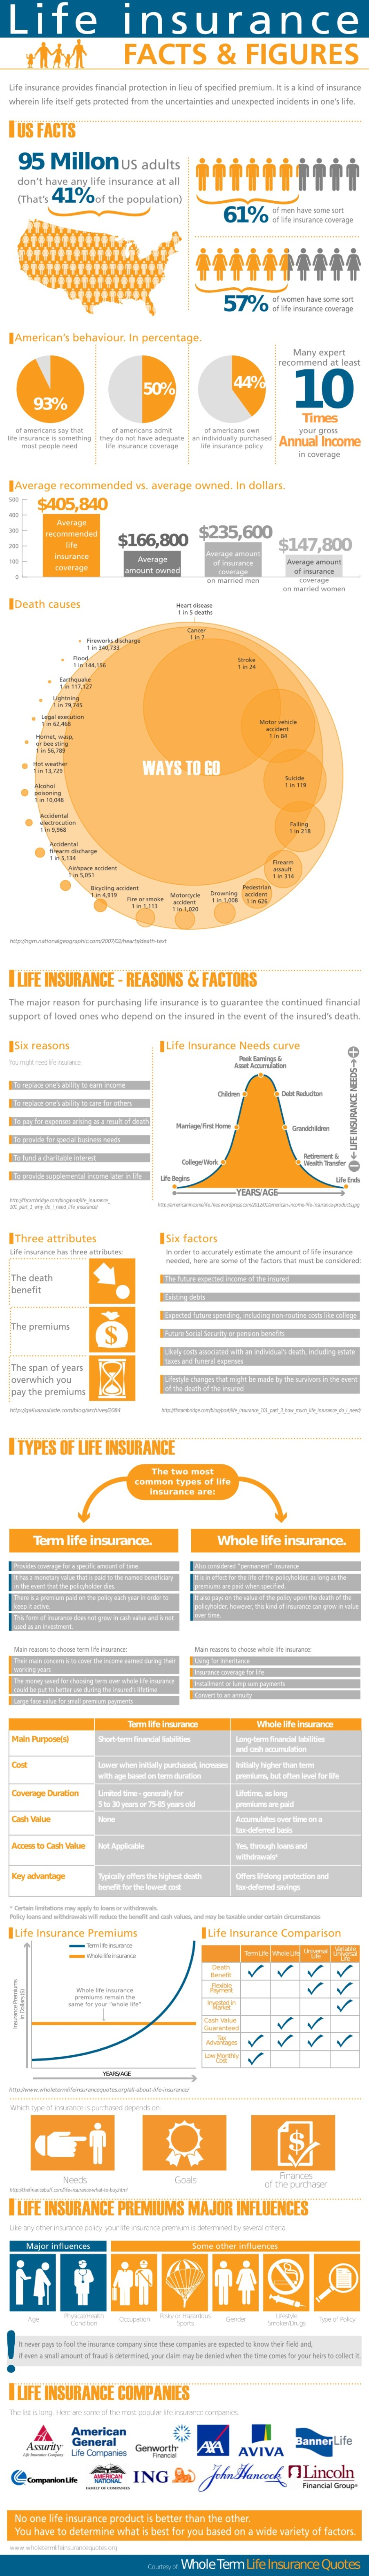 indian insurance industry facts and figures As the insurance industry's foremost provider of global insurance market information and statistics, axco responds to insurance professionals' ever-evolving needs, delivering vital insurance information through a suite of accessible and innovative products and services.